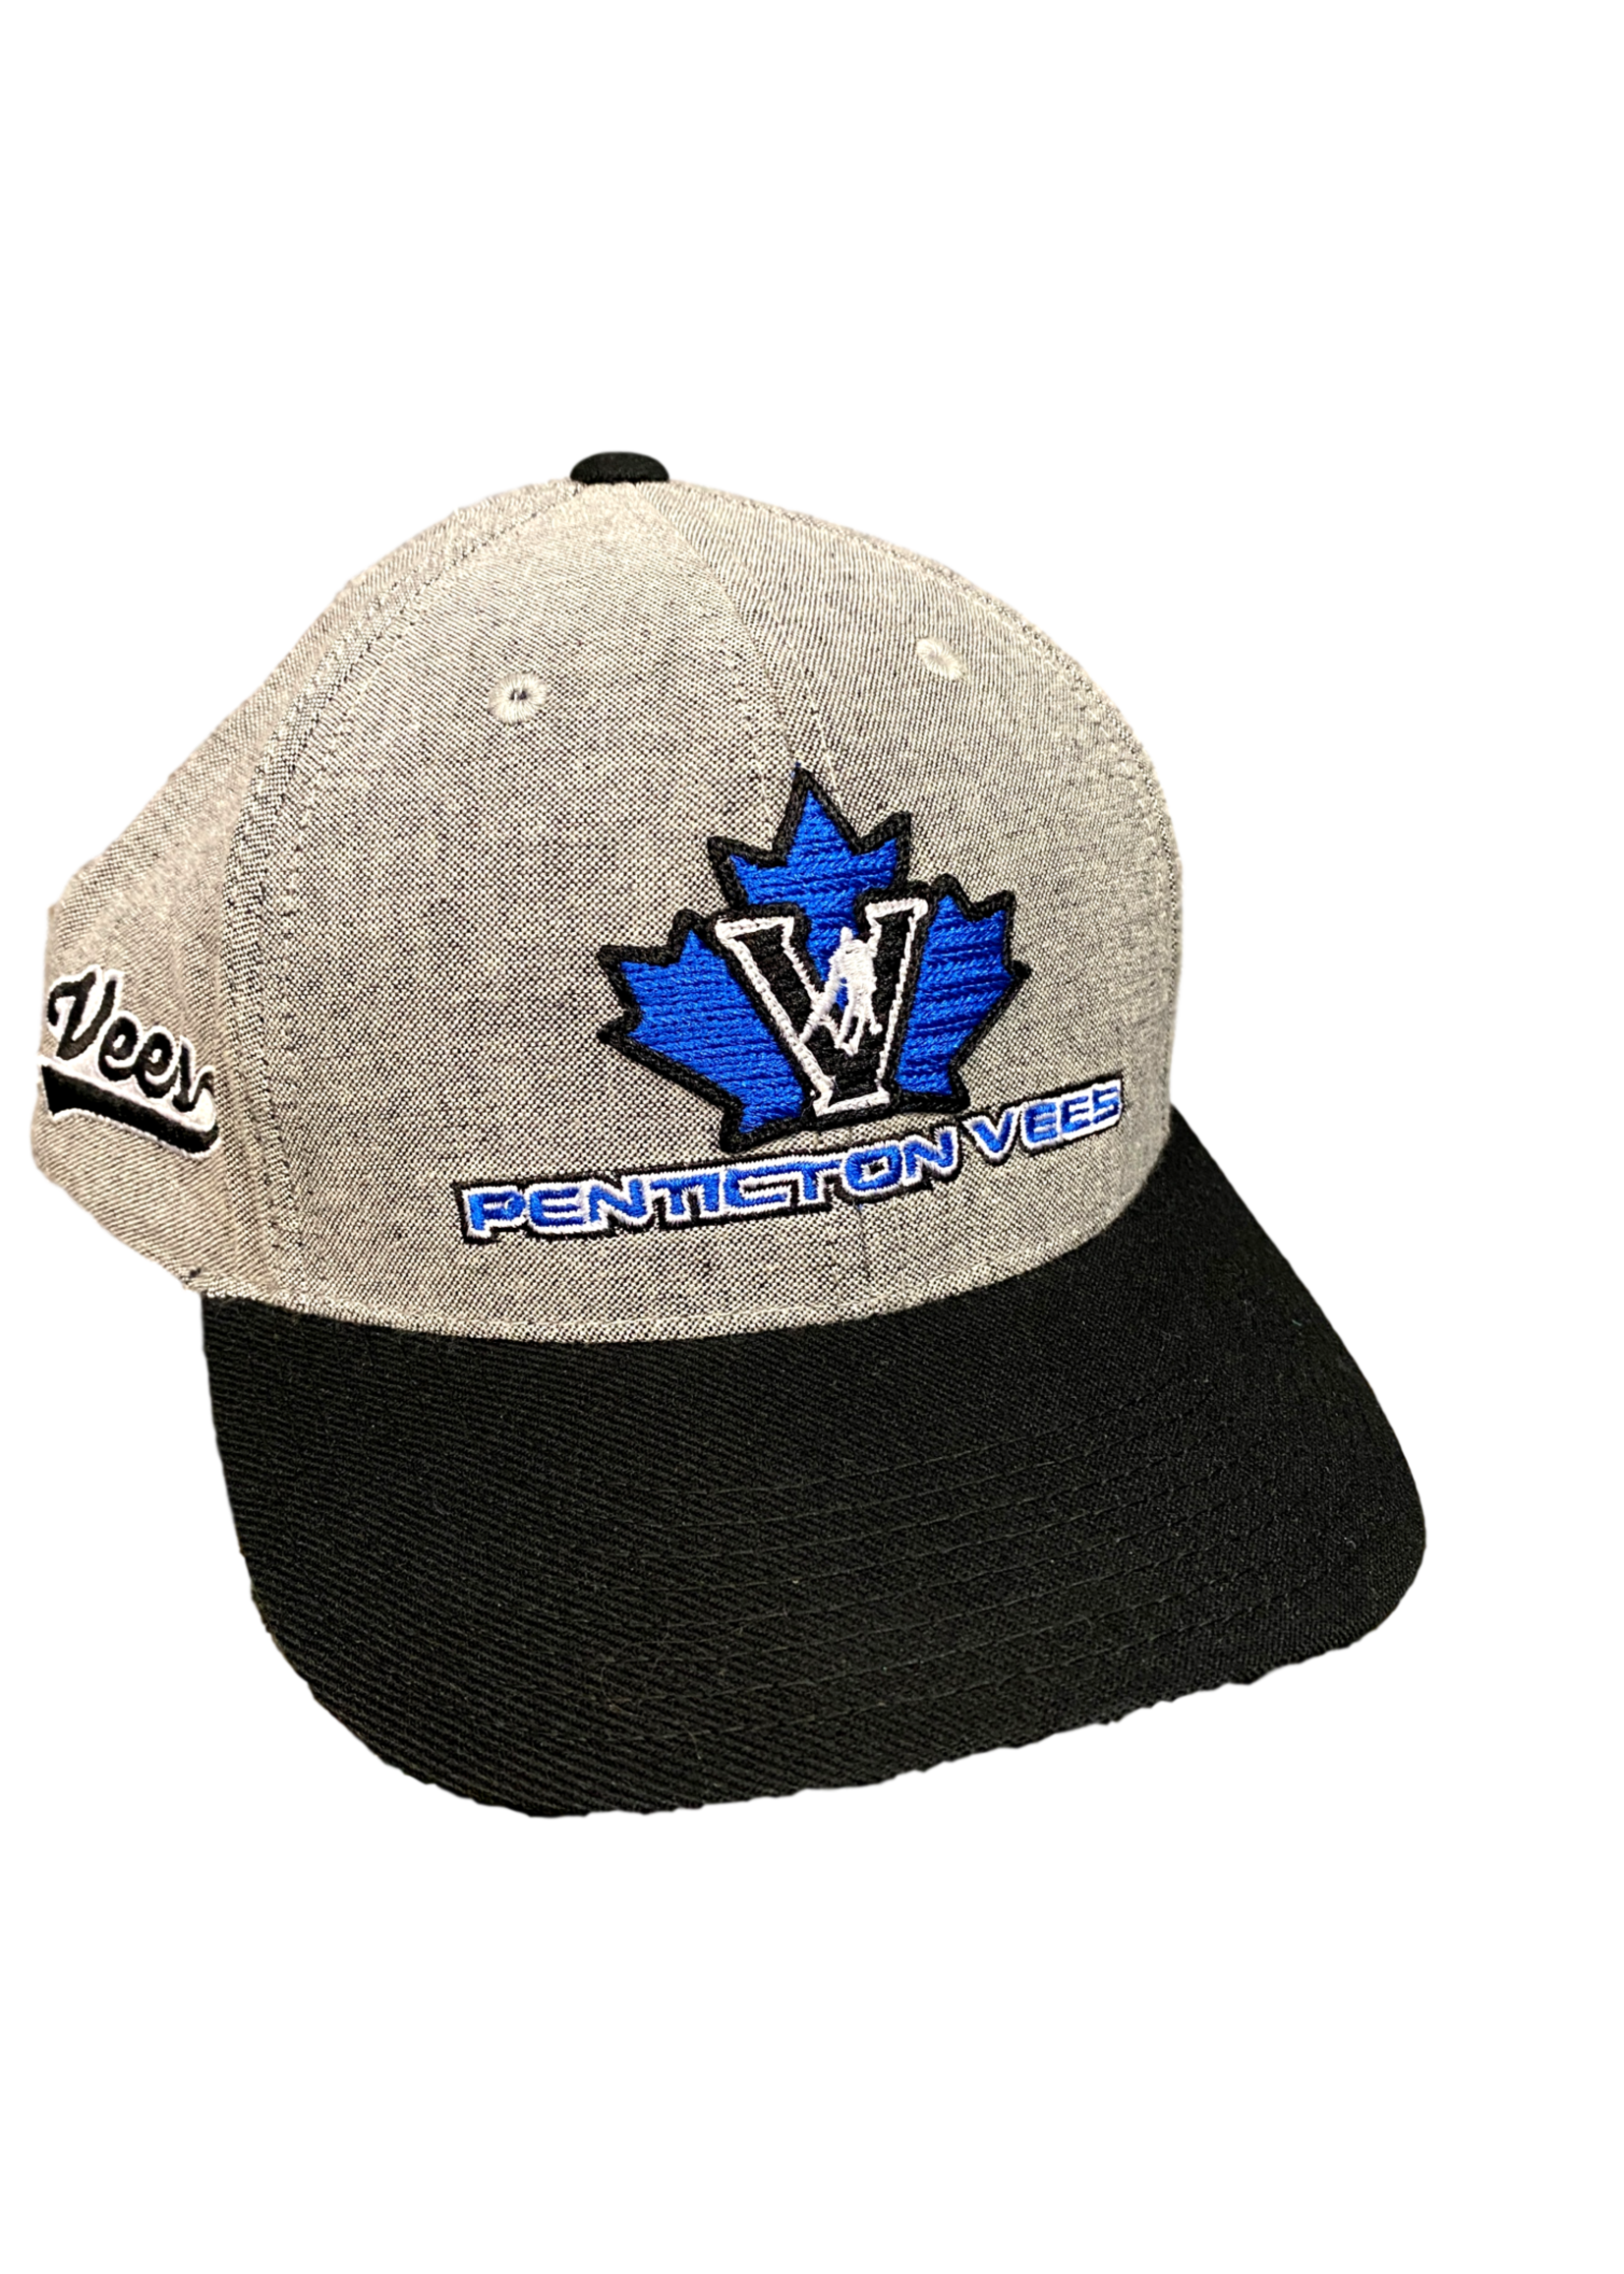 American Needle Penticton Vees Hat-Ball Game